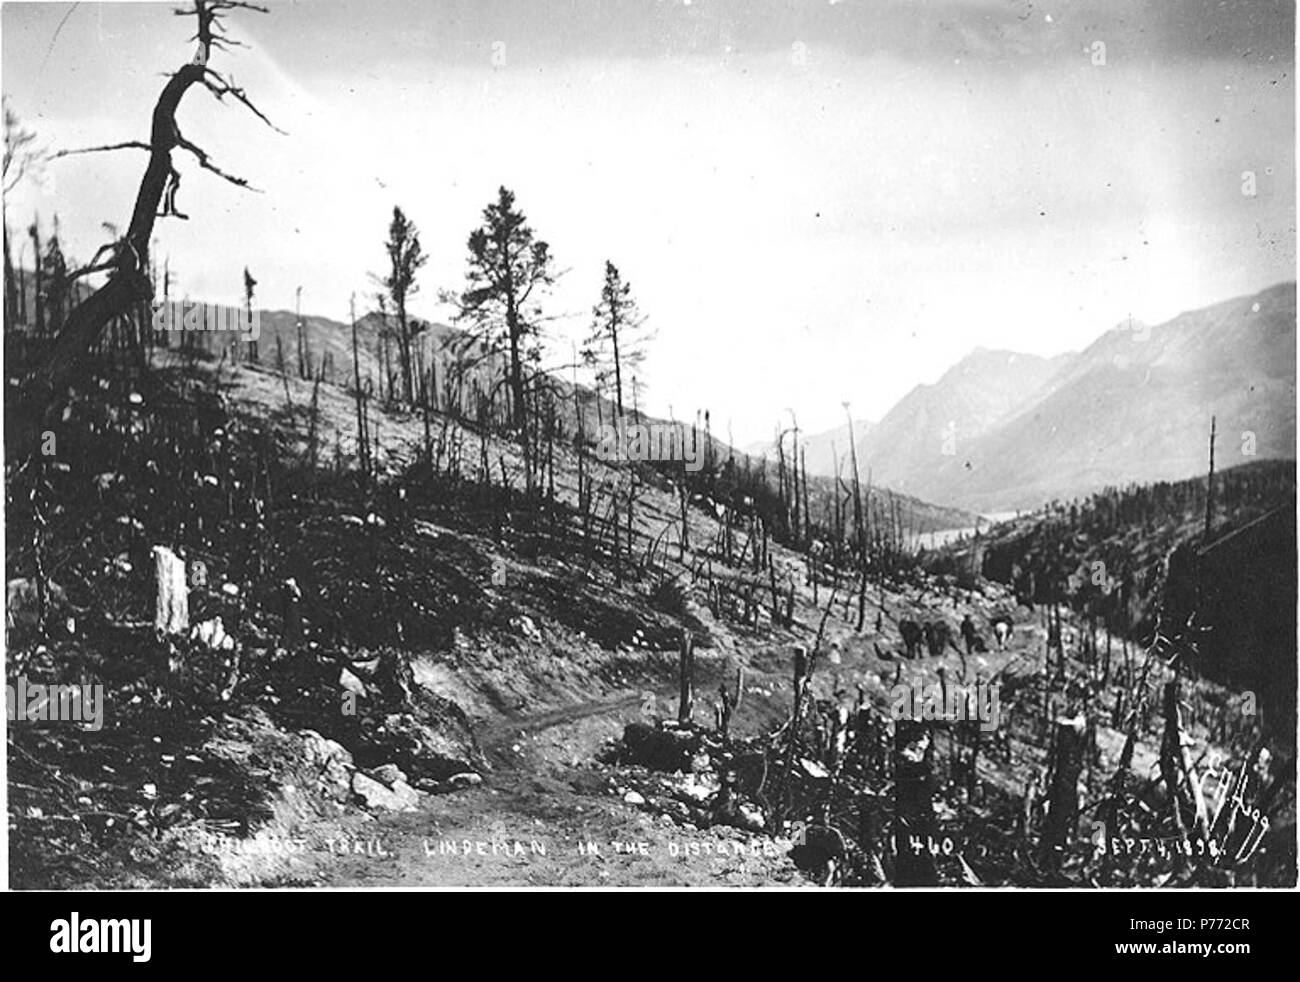 . English: Chilkoot Trail showing Lindeman Lake in the distance, British Columbia, September 4, 1898 . English: Caption on image: 'Chilkoot Trail. Lindeman in the distance Sept 4, 1898' Klondike Gold Rush. Subjects (LCTGM): Lindeman Lake (B.C.); Lakes & ponds--British Columbia Subjects (LCSH): Chilkoot Trail; Trails--British Columbia  . 1898 2 Chilkoot Trail showing Lindeman Lake in the distance, British Columbia, September 4, 1898 (HEGG 440) - Stock Image